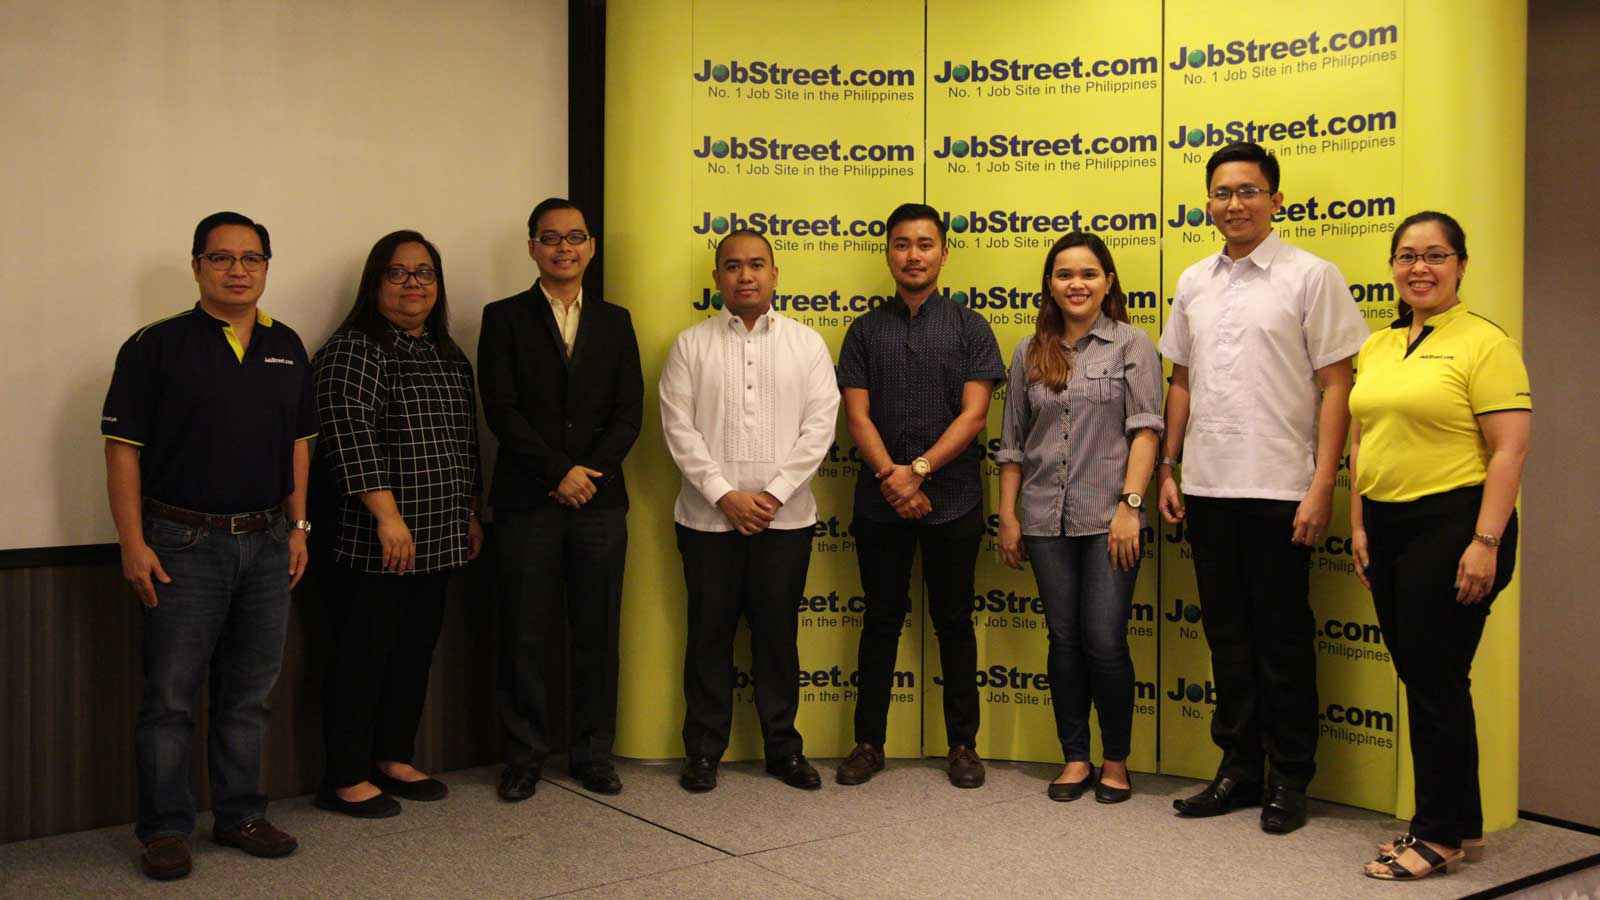 jobstreet and government office